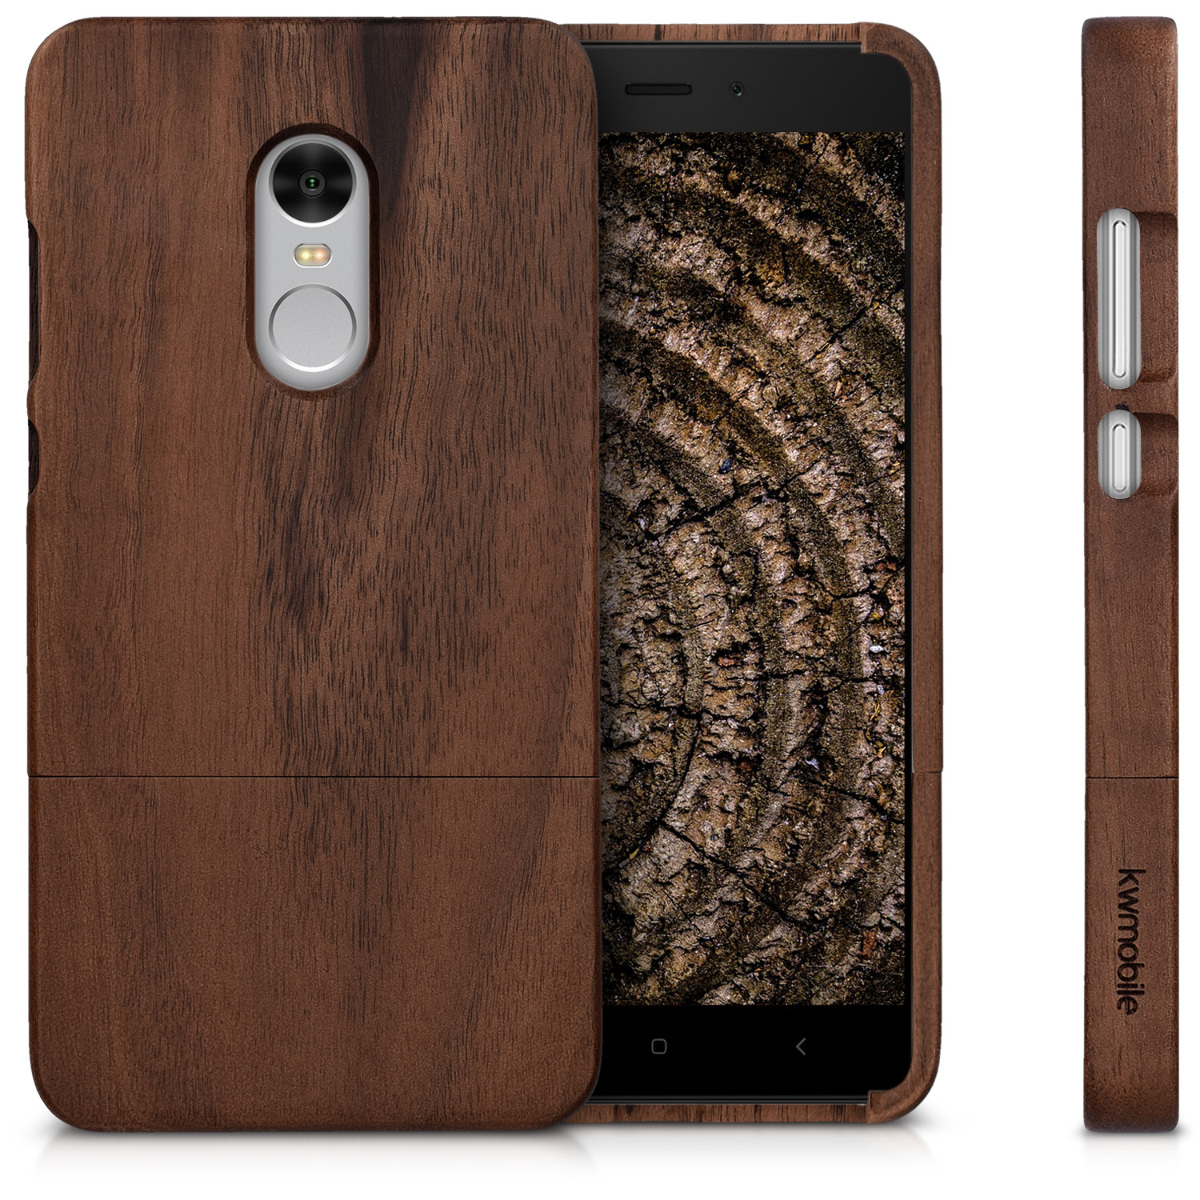 Hlle Fr Xiaomi Redmi Note 4 4x Holz Handy Case Cover Redminote 64 Gold Huelle Fuer